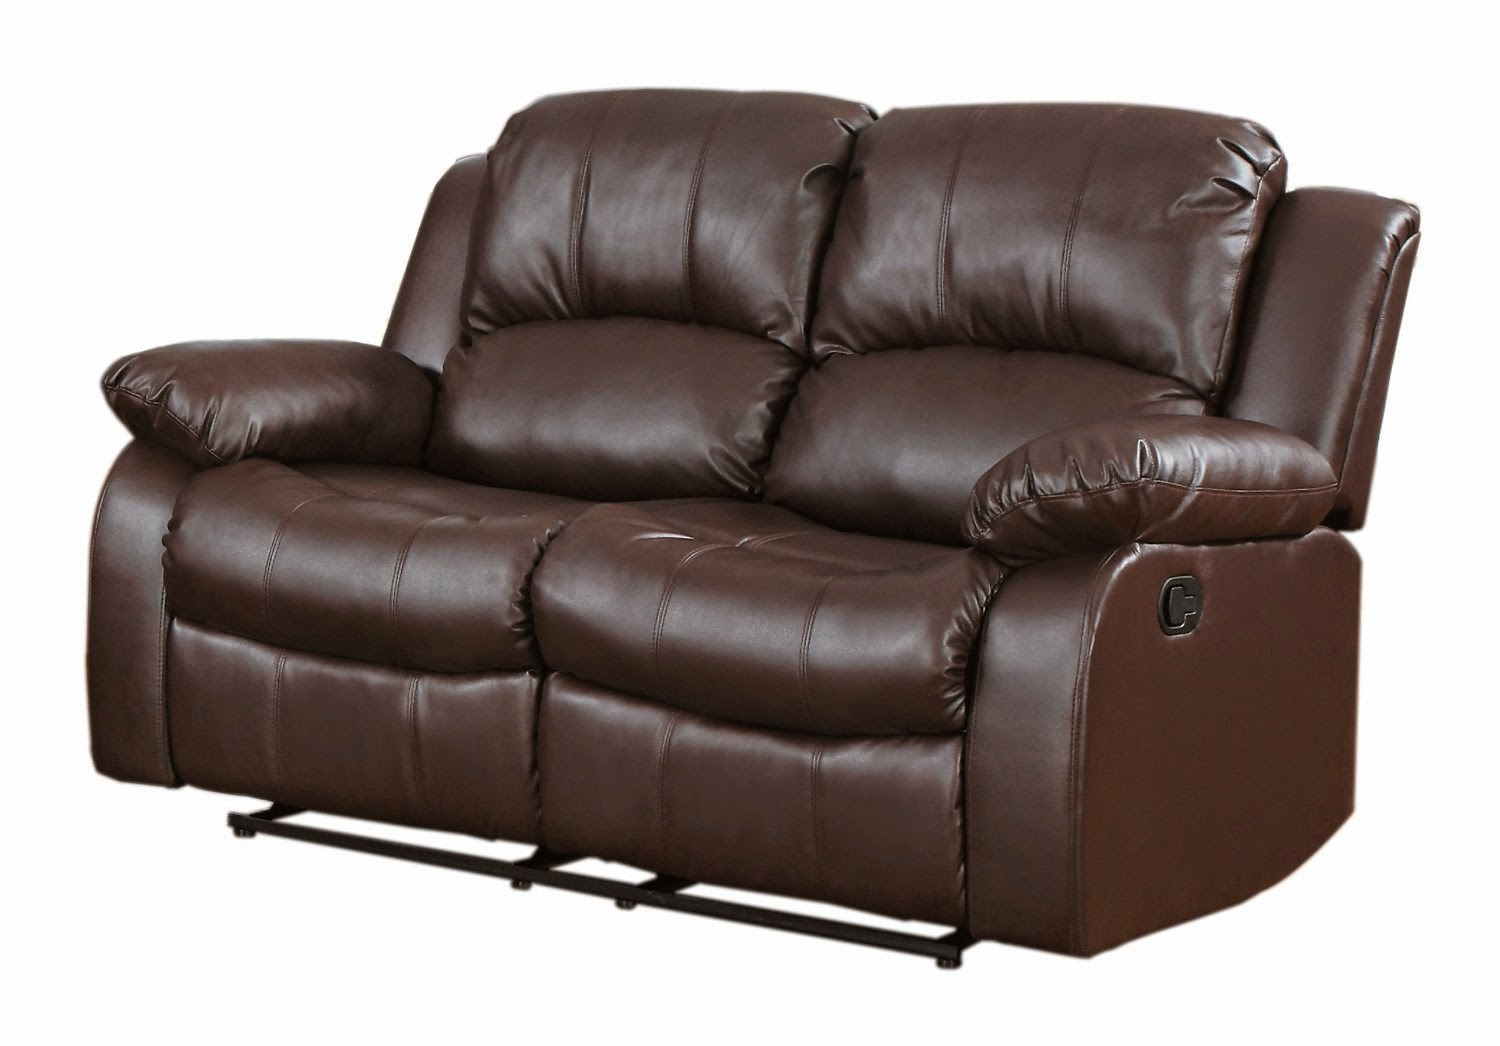 brown leather couch: brown leather couch and loveseat